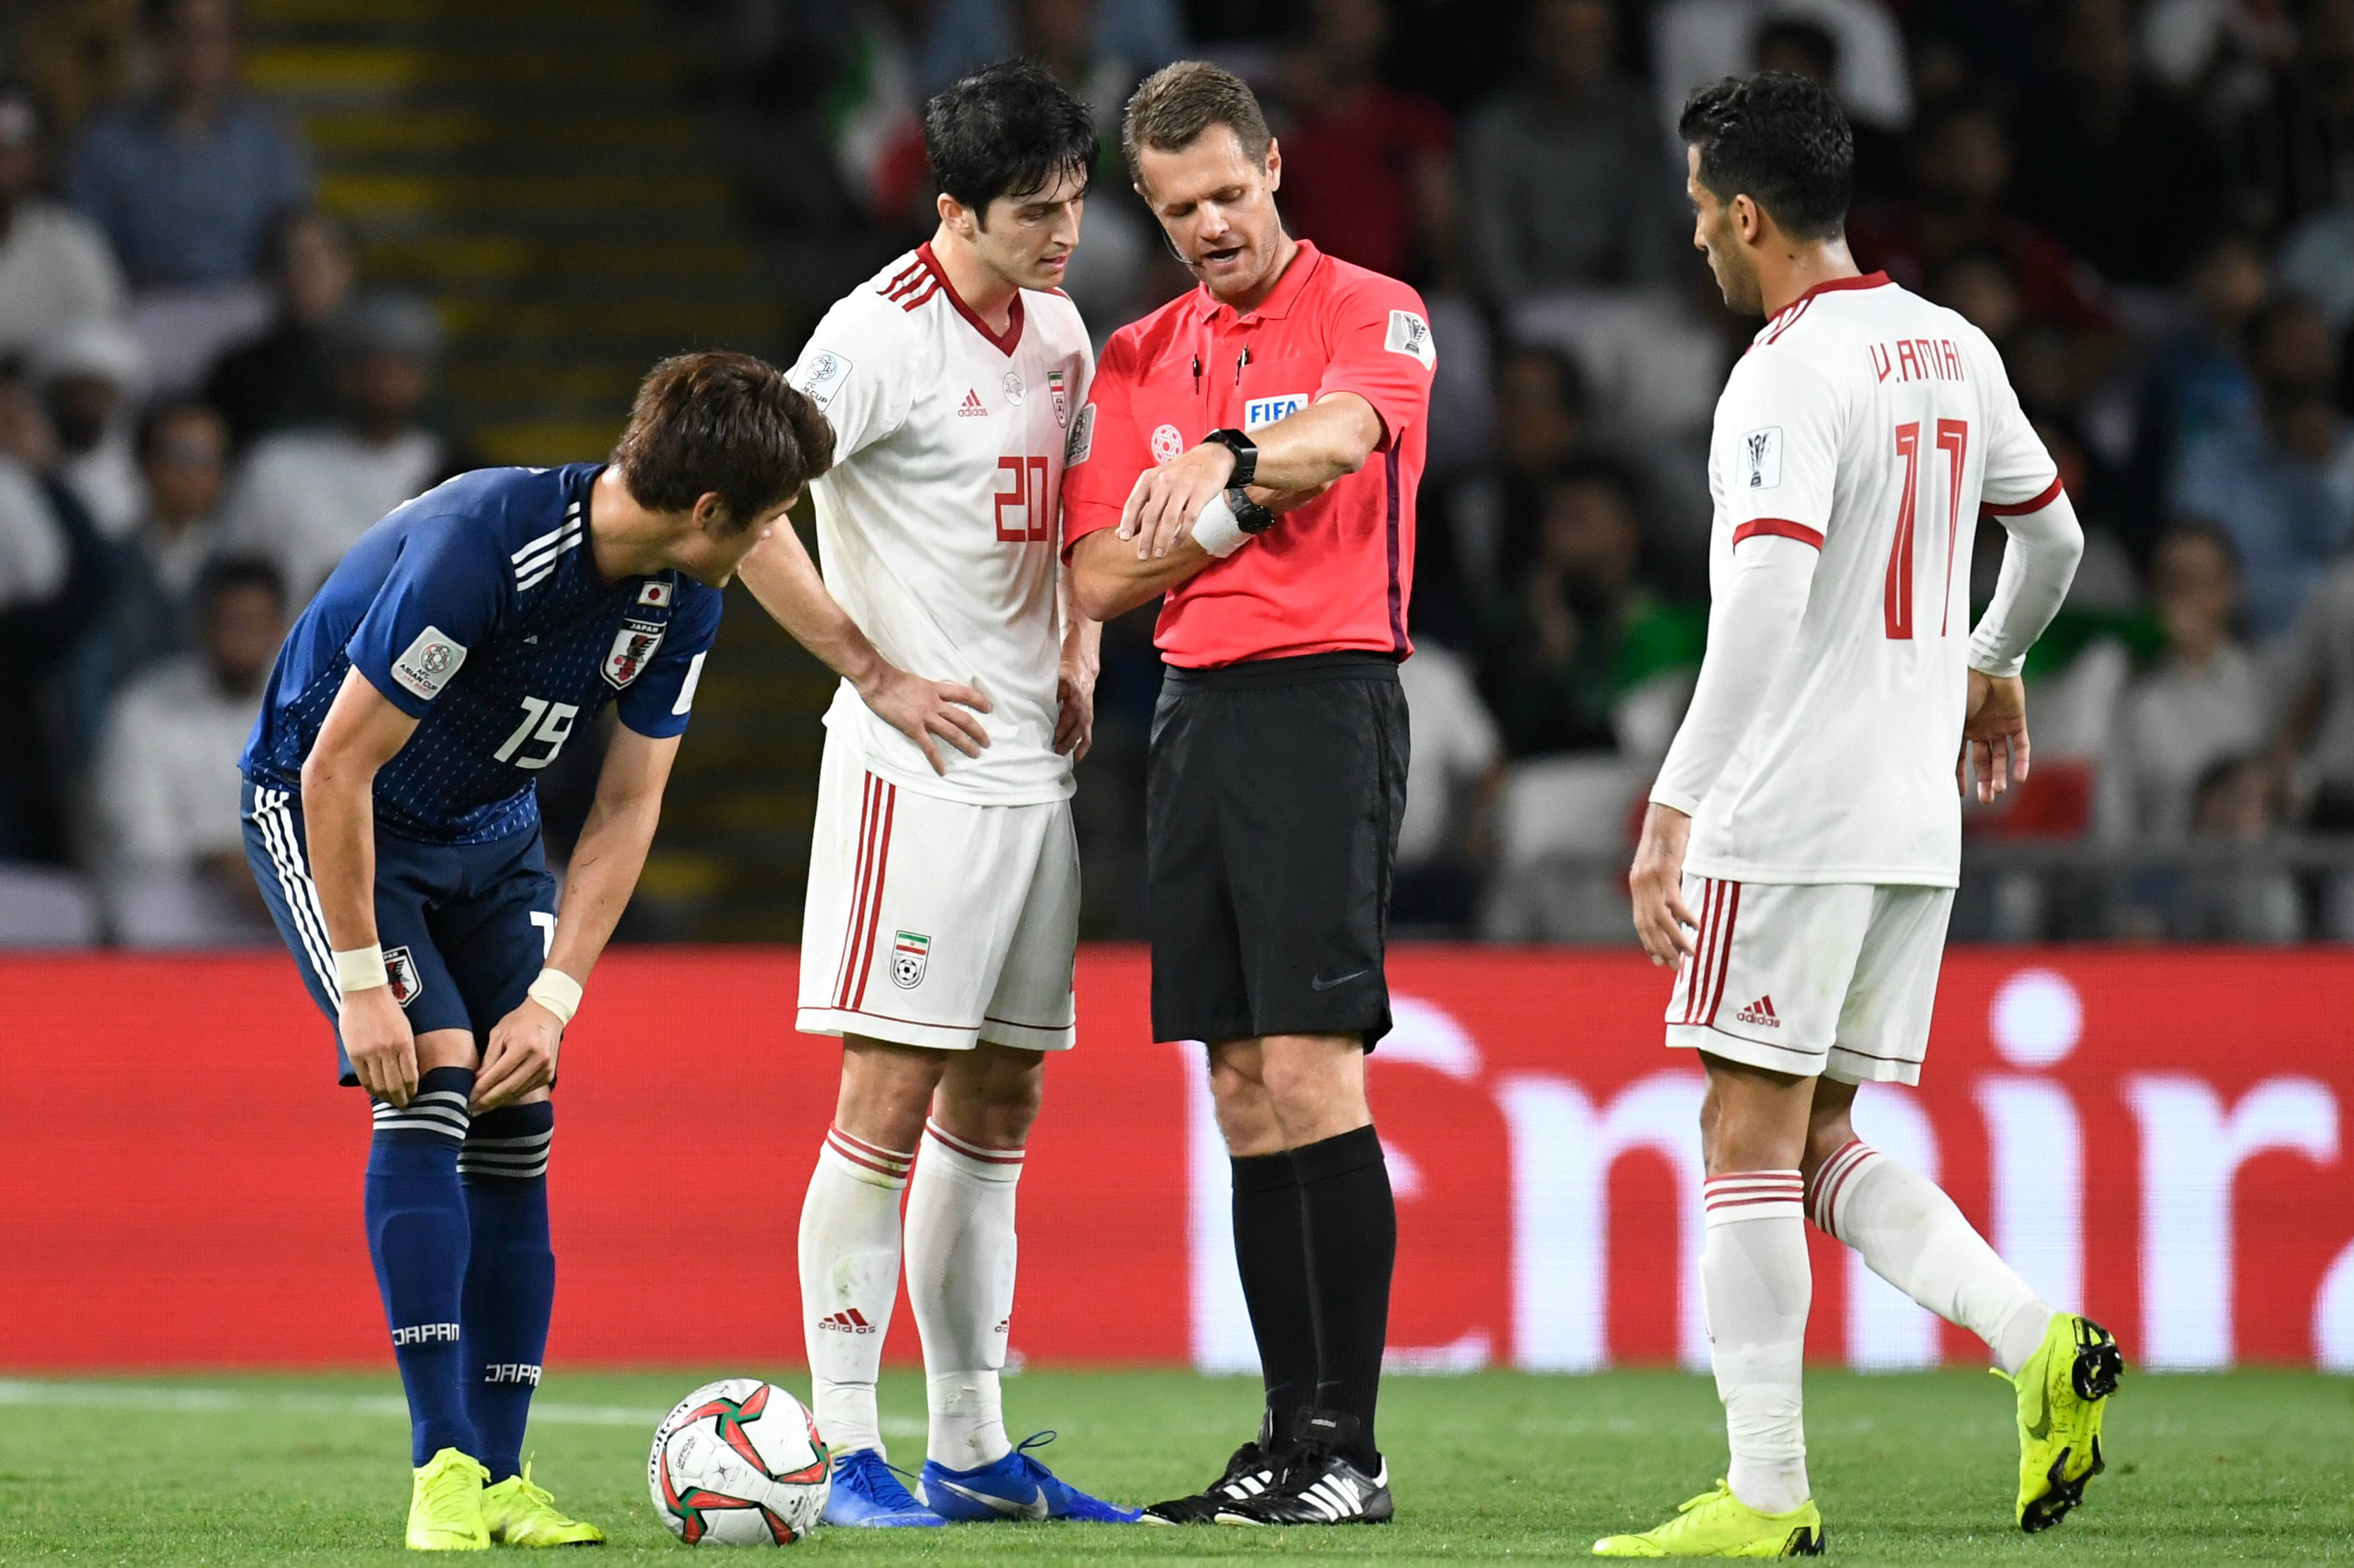 Chris Beath officiating at the 2019 AFC Asian Cup in the match between Iran and Japan